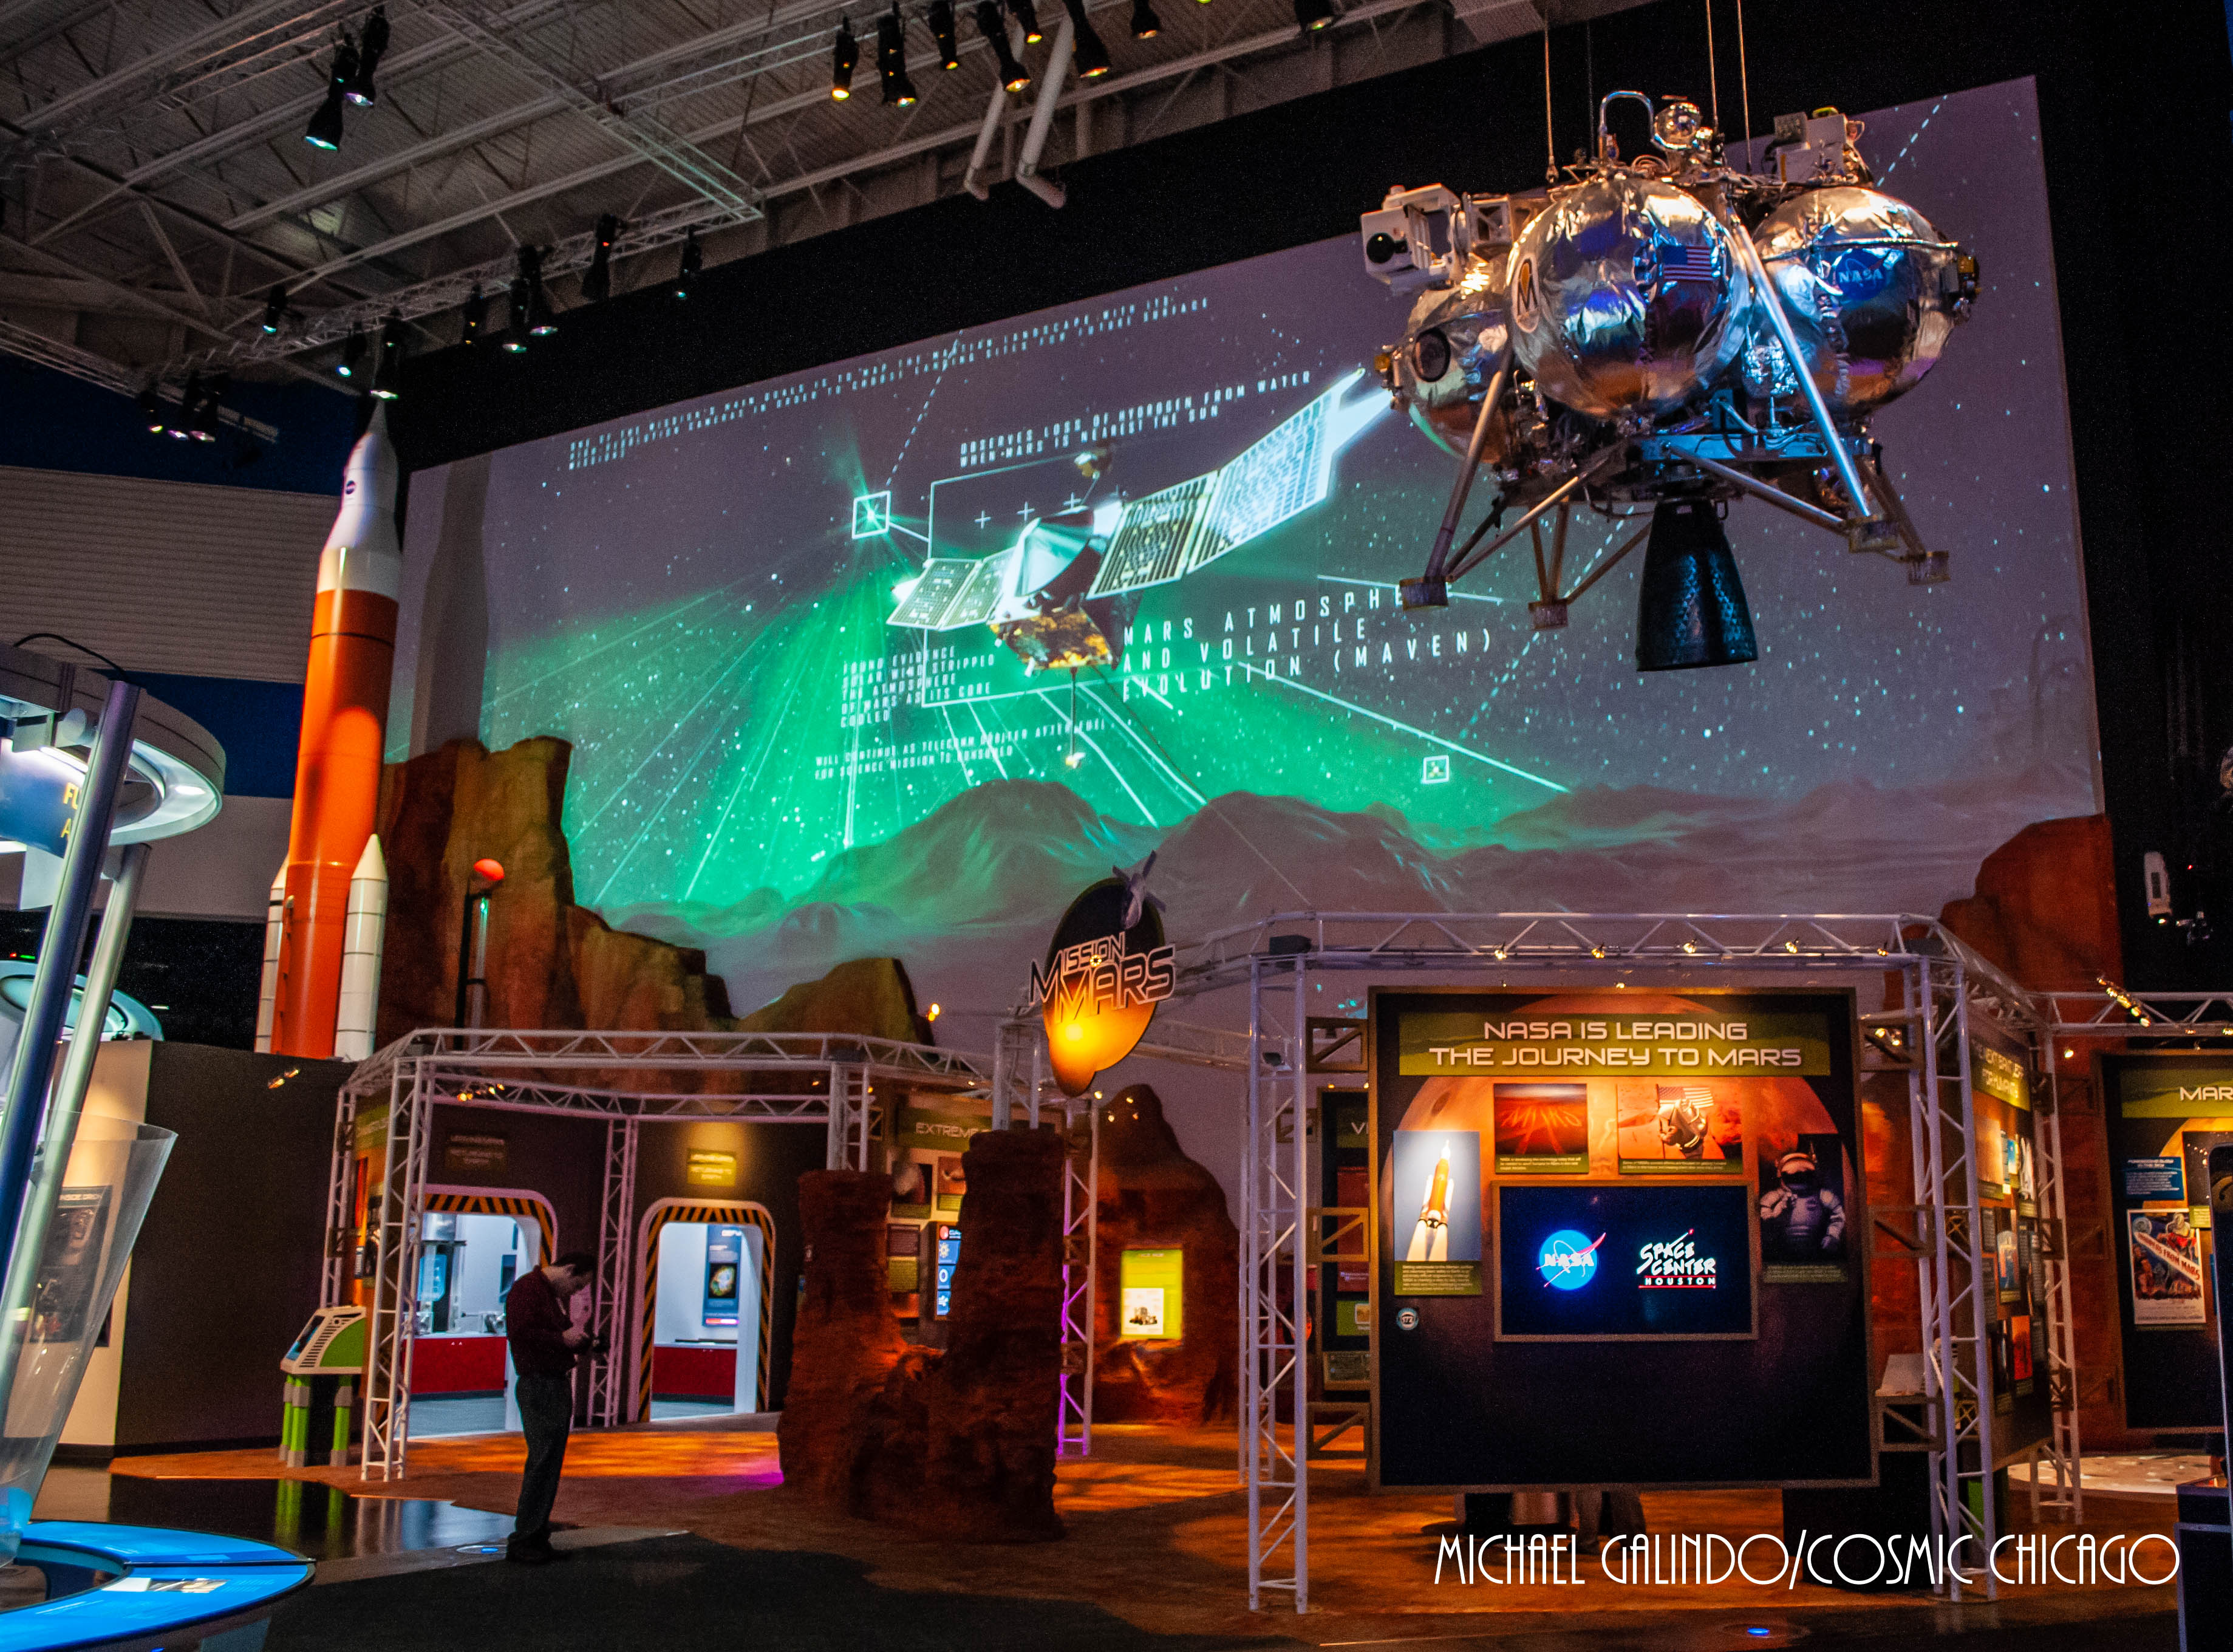 Mission Mars exhibit at Space Center Houston